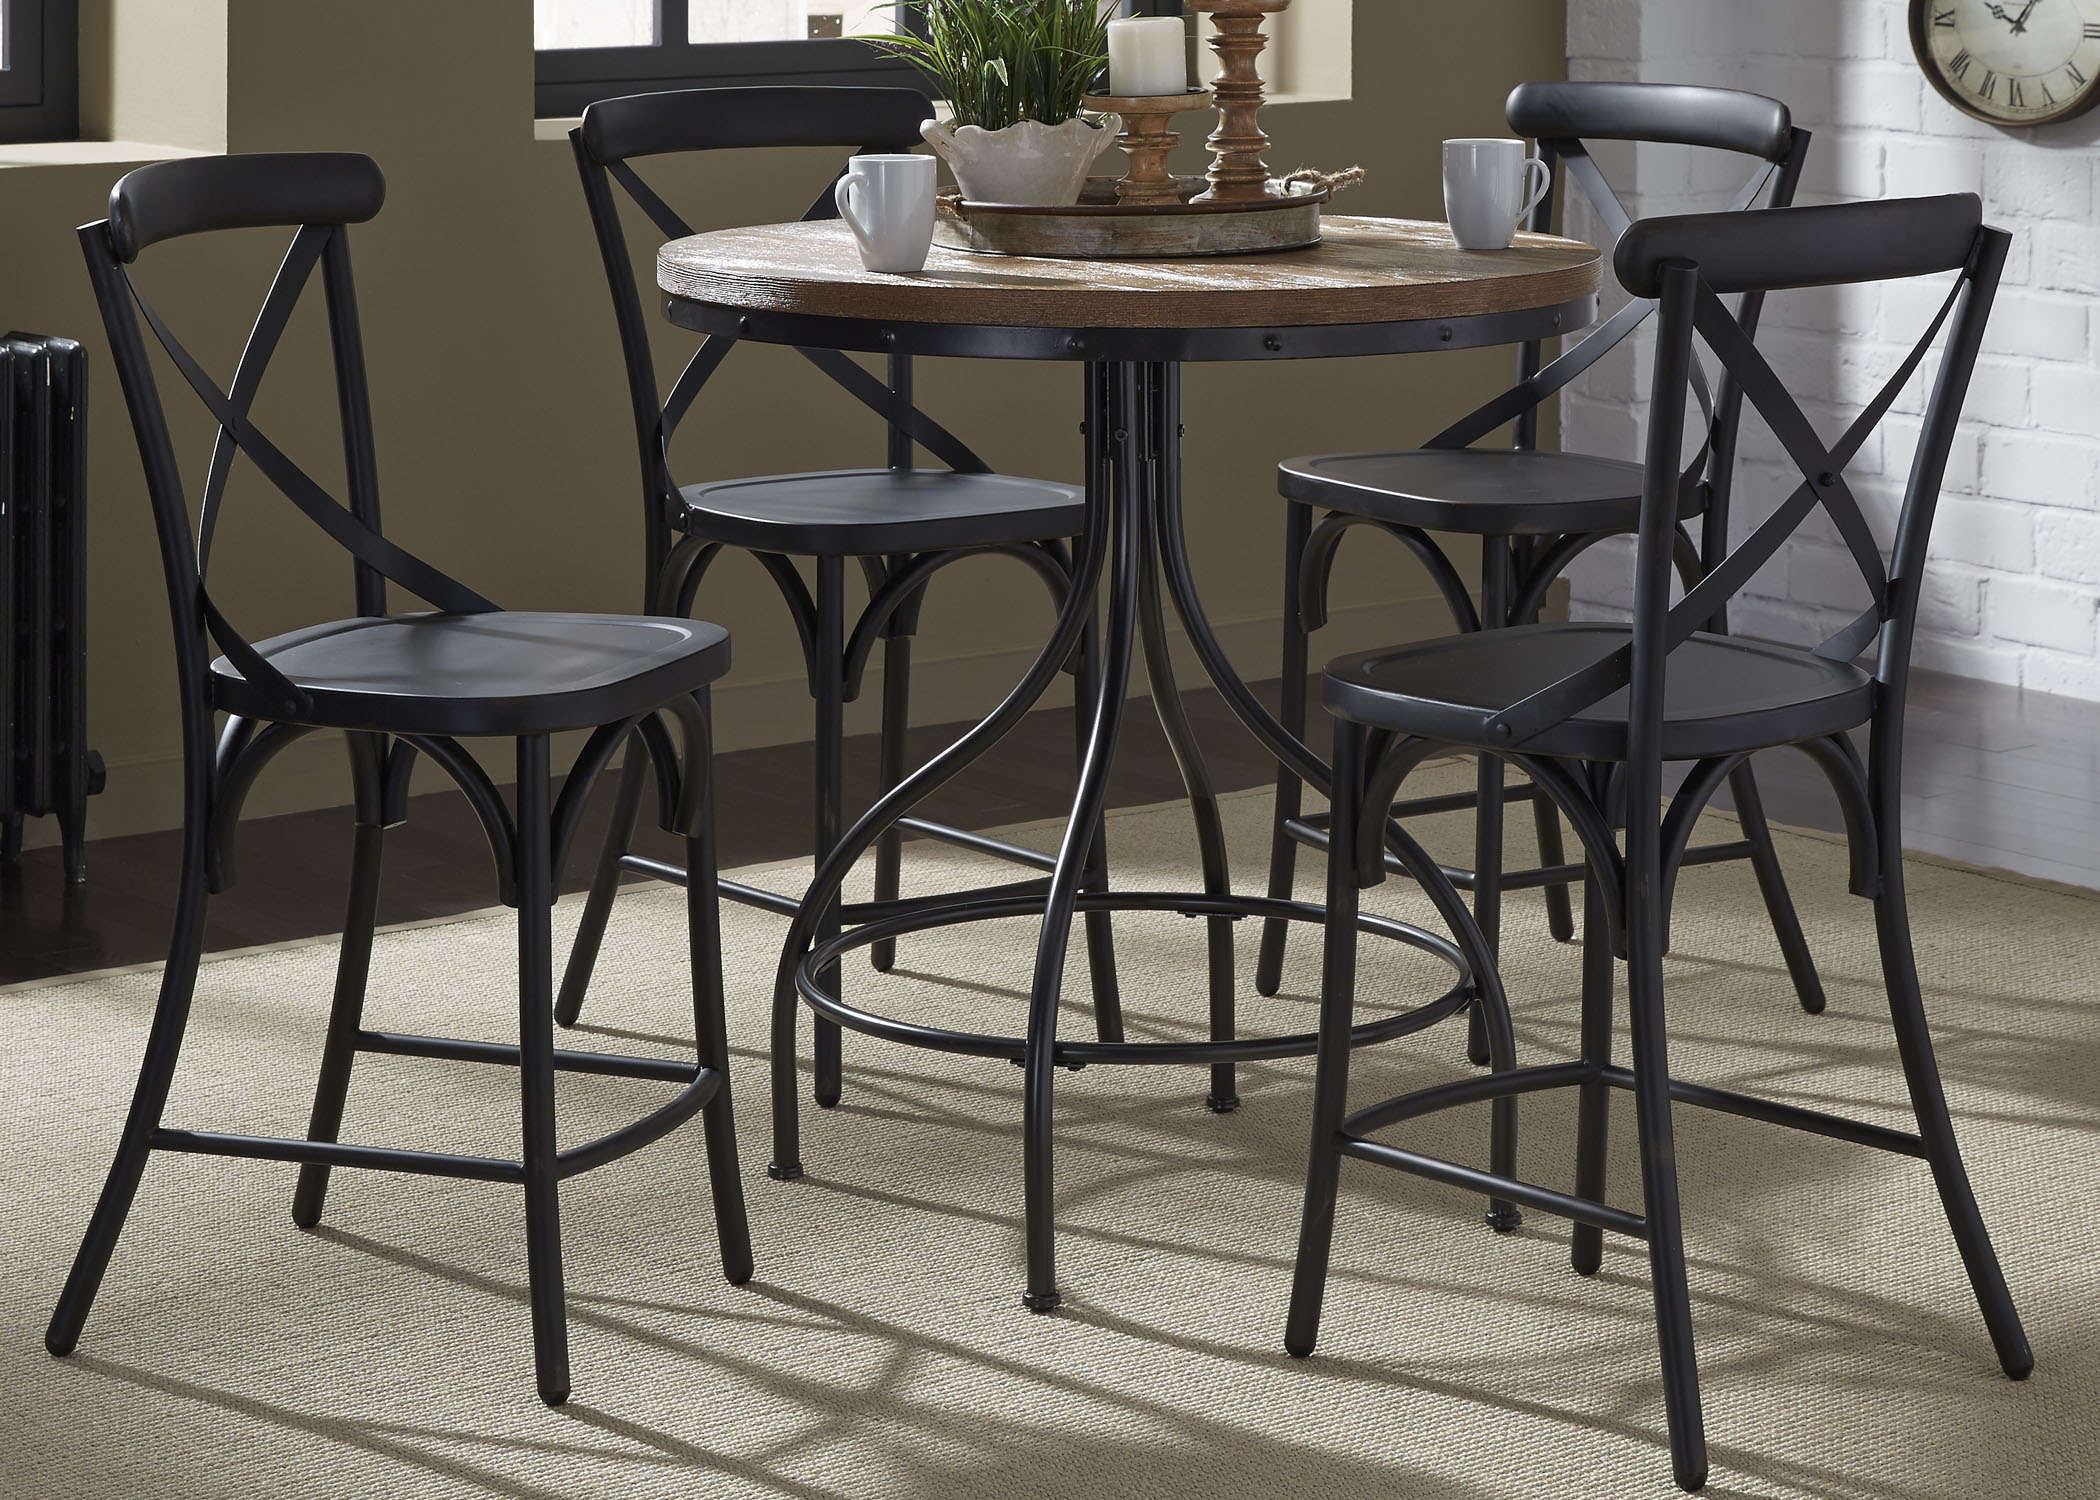 Liberty Furniture Vintage Dining Series 5-Piece Gathering Table and ...